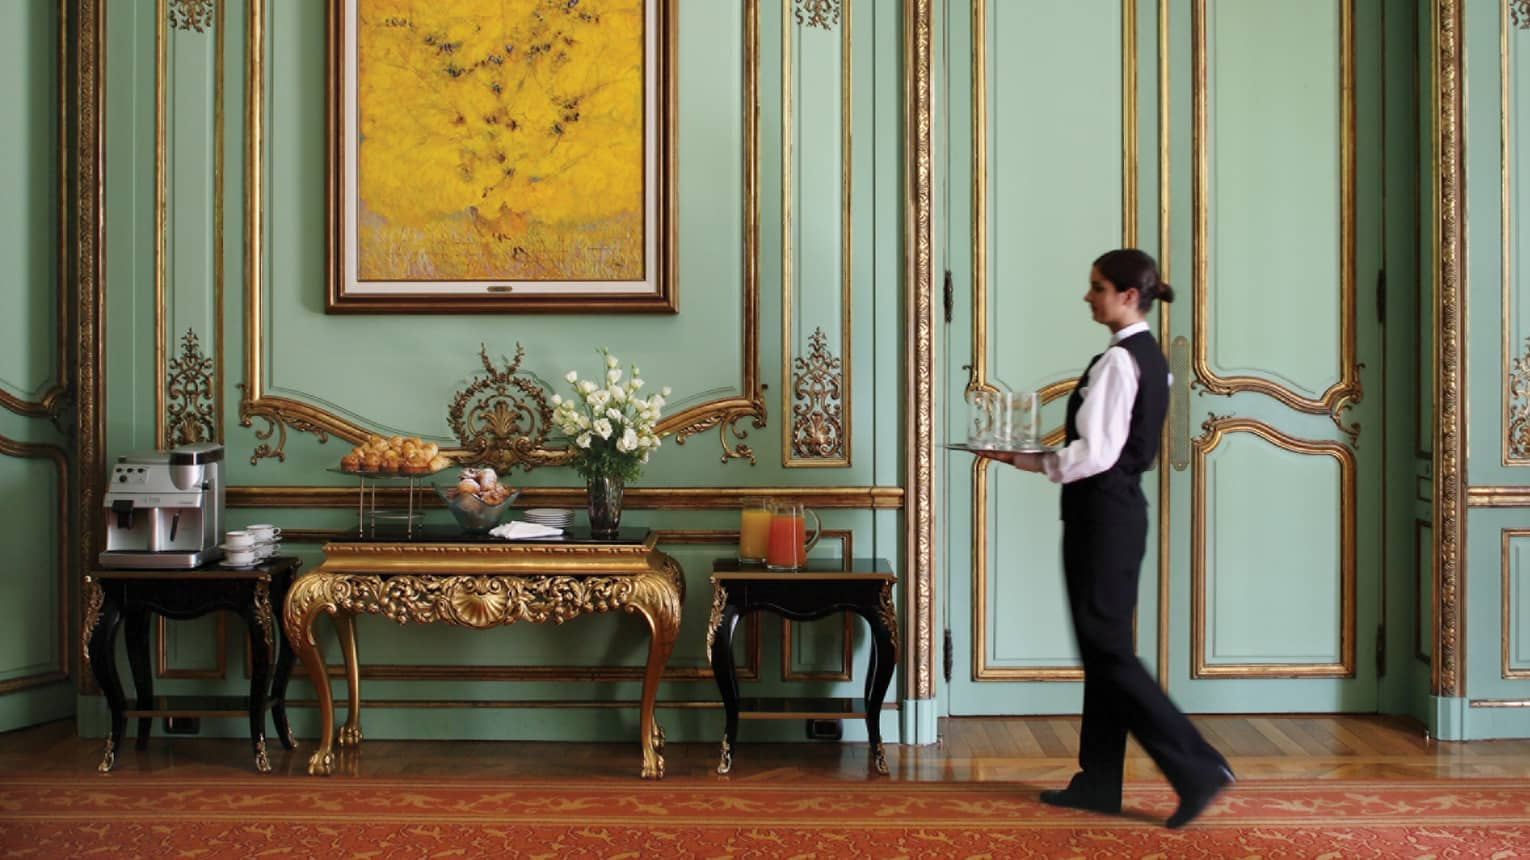 Server in black vest, pants carries tray down historic hallway with gold trim, table